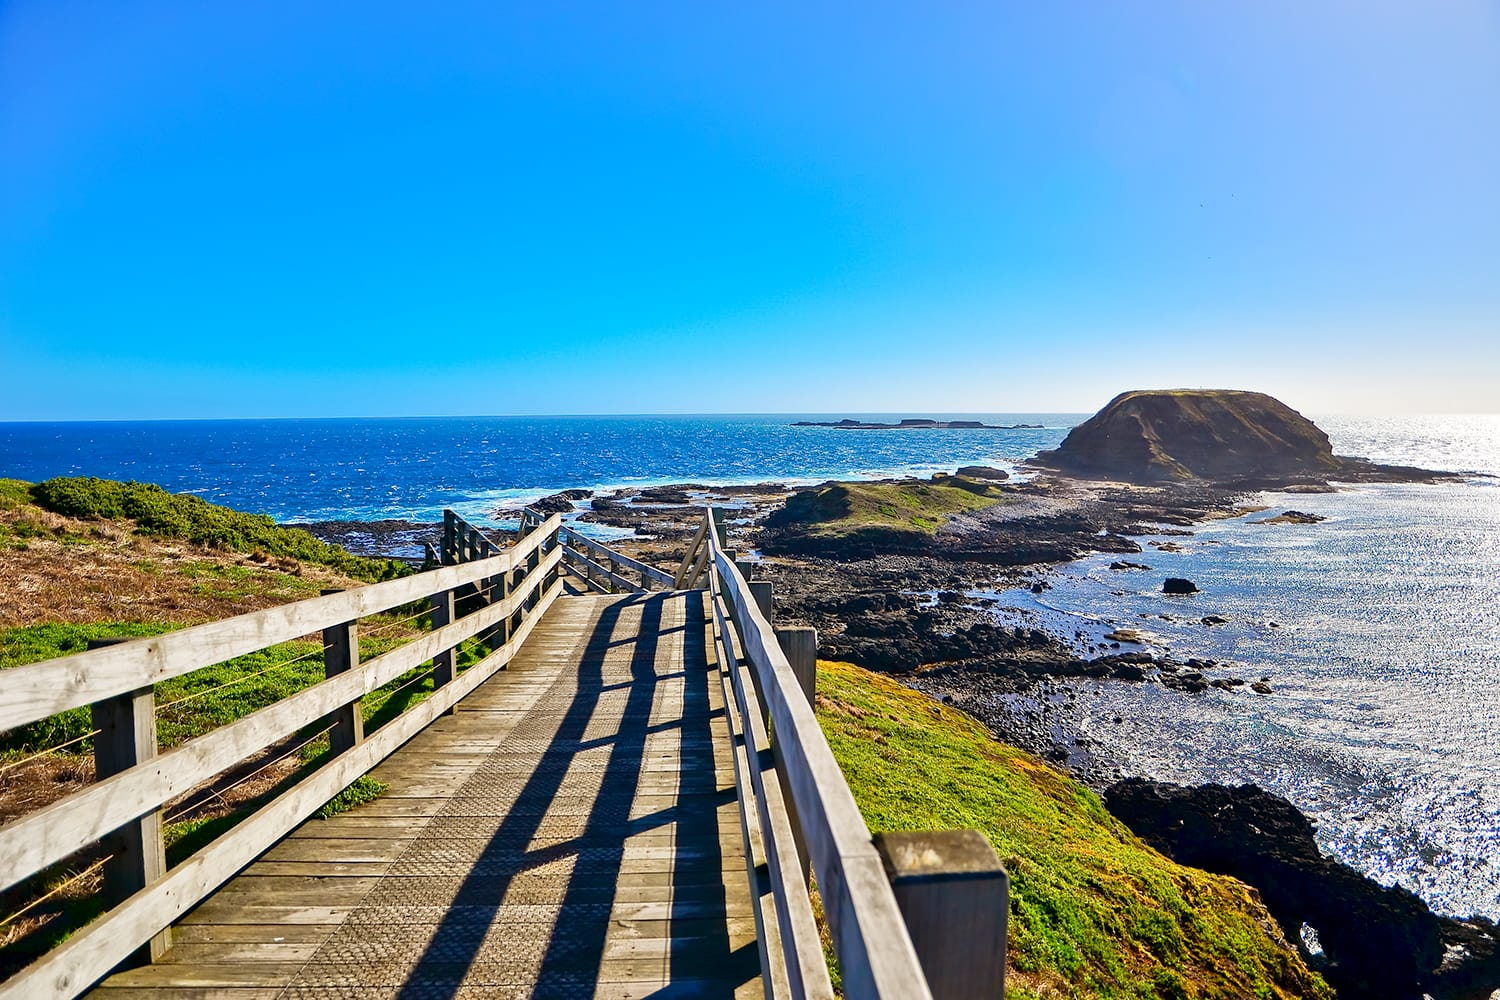 View of the coastline at Nobbies Centre in Phillip Island, Victoria, Australia